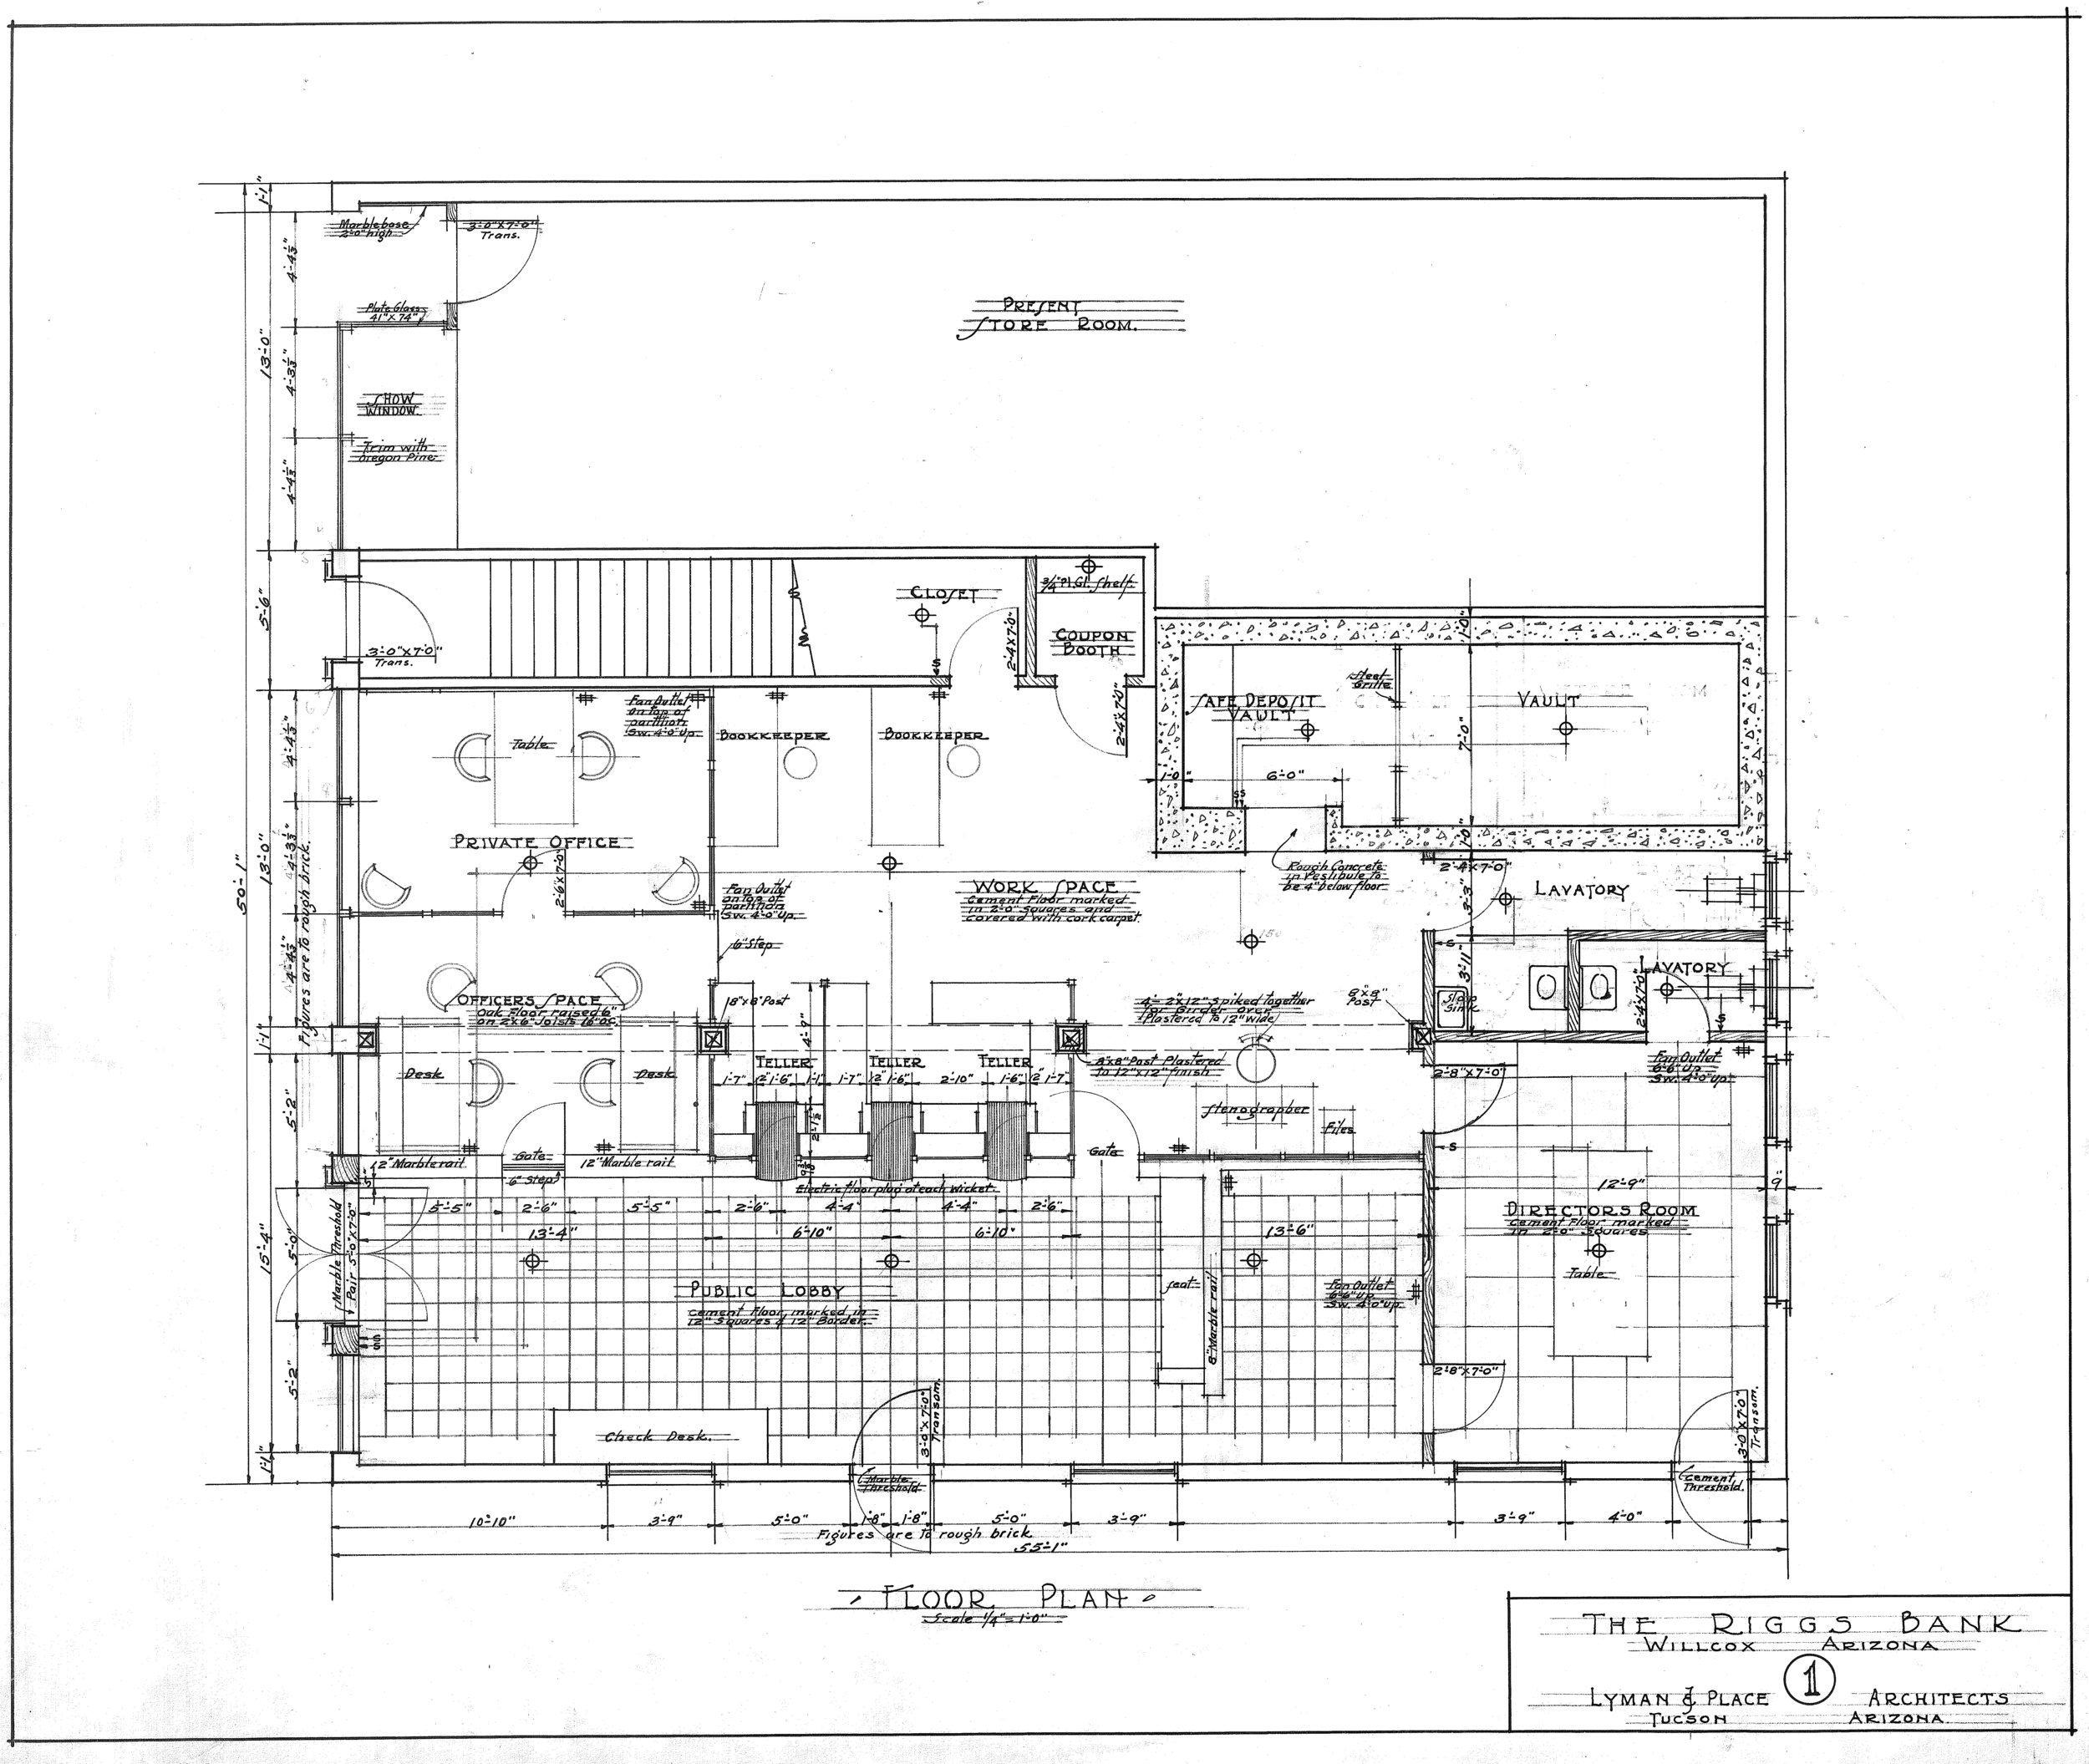 RIGGS BANK BUILDING DRAWING OF THE FLOOR PLAN